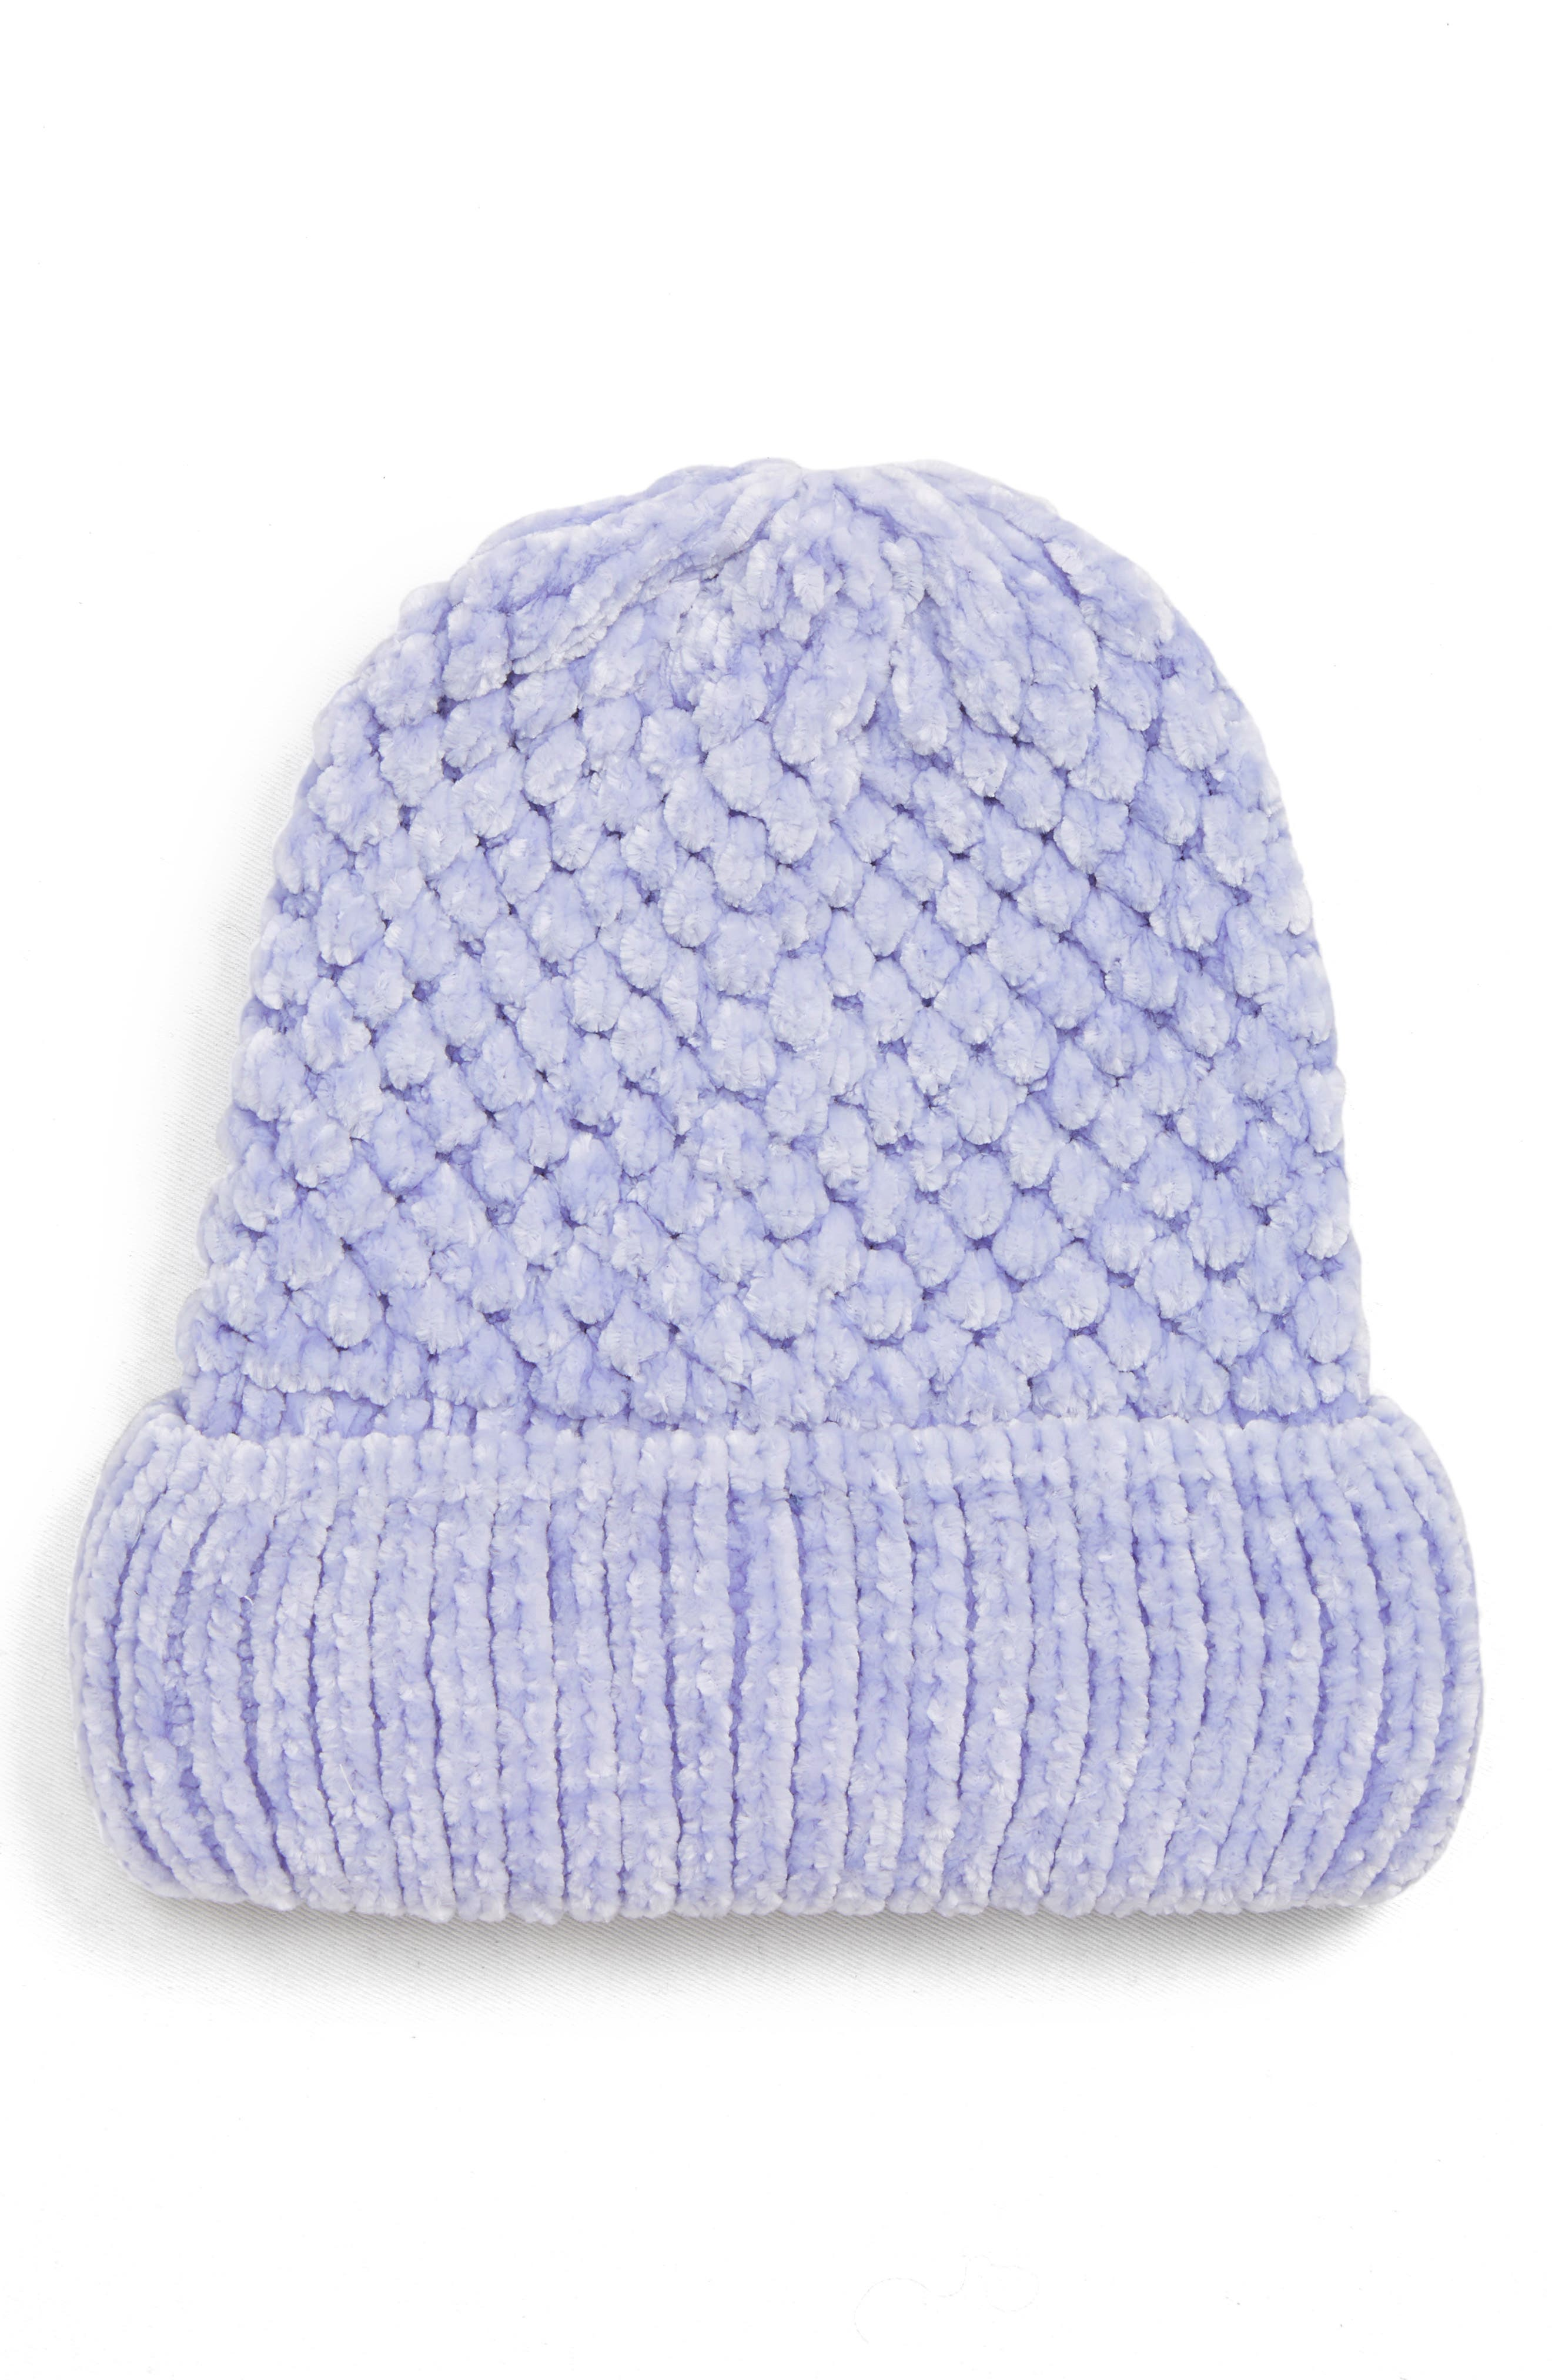 Chenille Beanie Hat,                         Main,                         color, LILAC